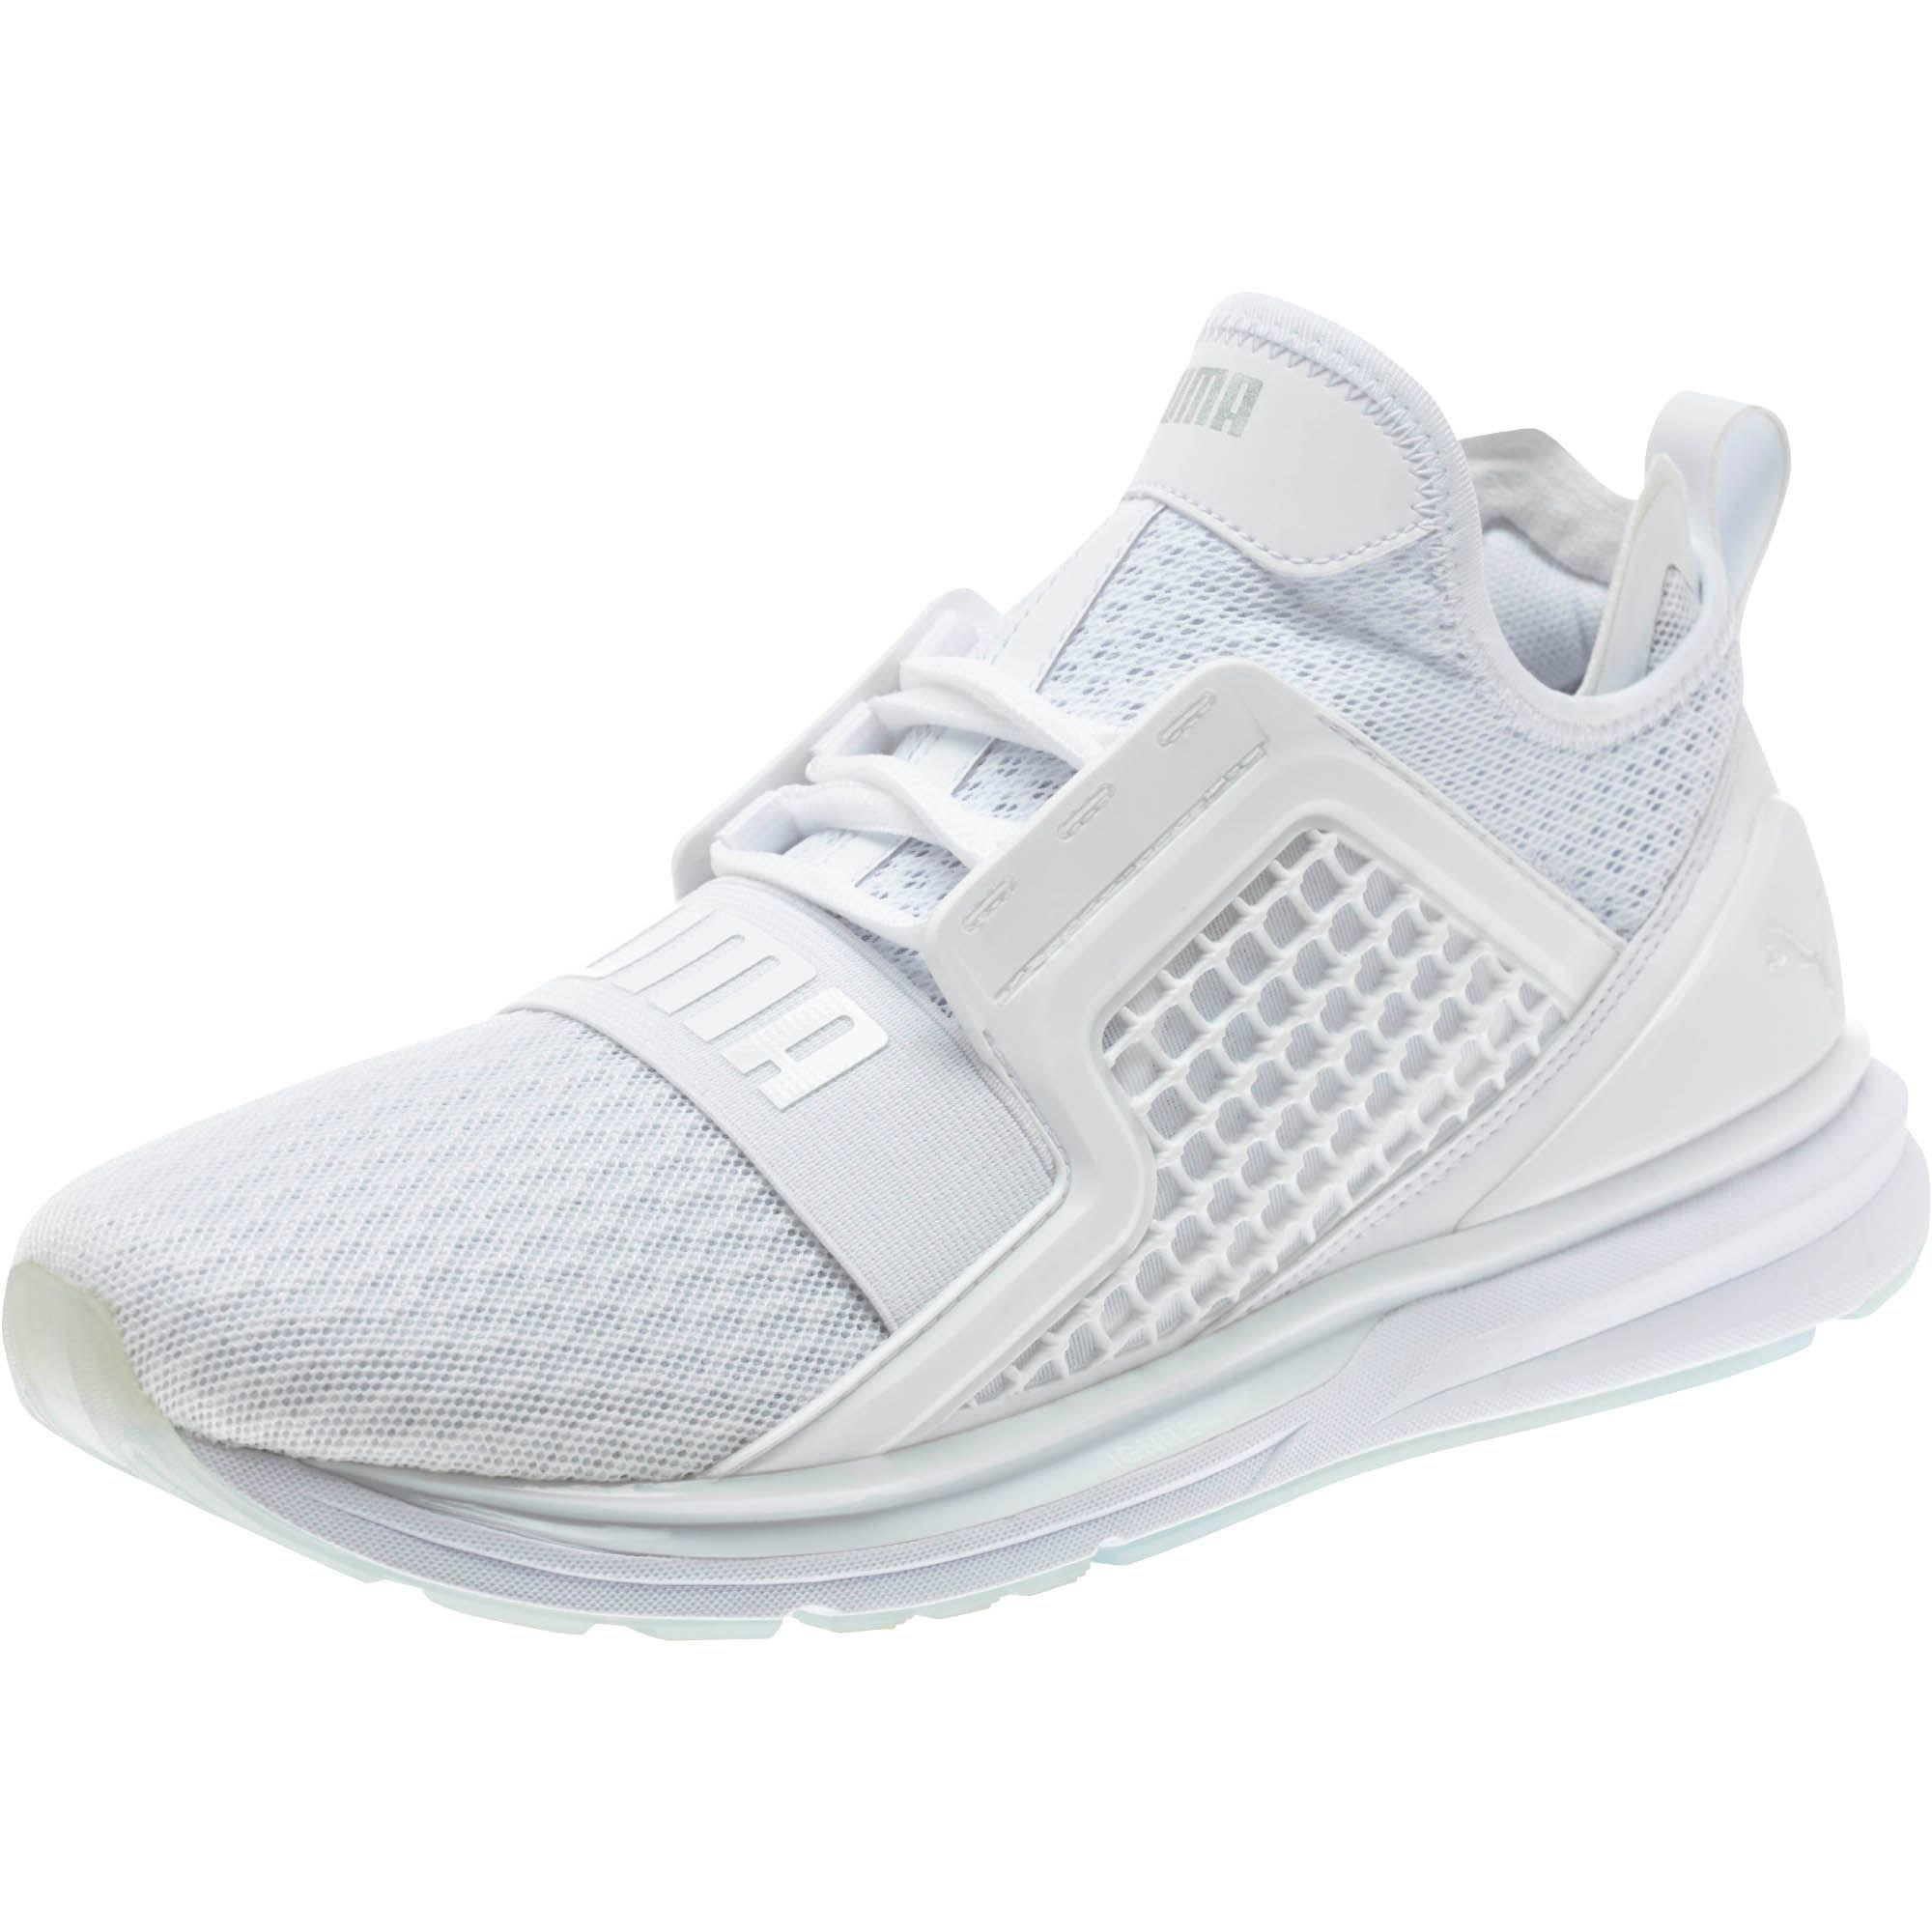 100f80b2648f Lyst - PUMA Ignite Limitless Men s Training Shoes in White for Men